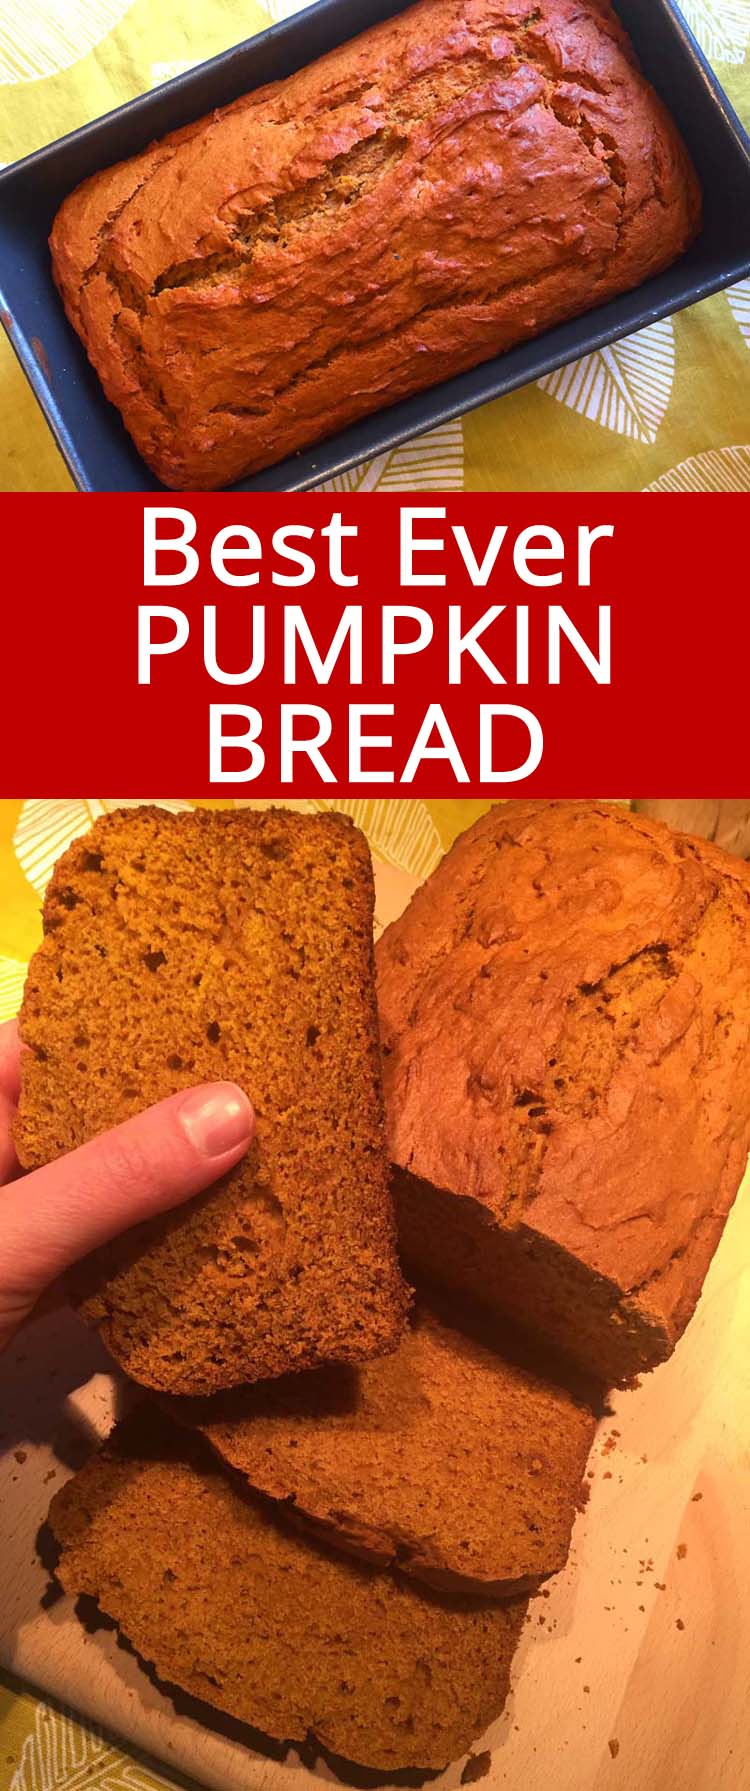 This pumpkin loaf is so easy to make and tastes amazing! This is the only pumpkin bread recipe you'll ever need! Truly the best ever!